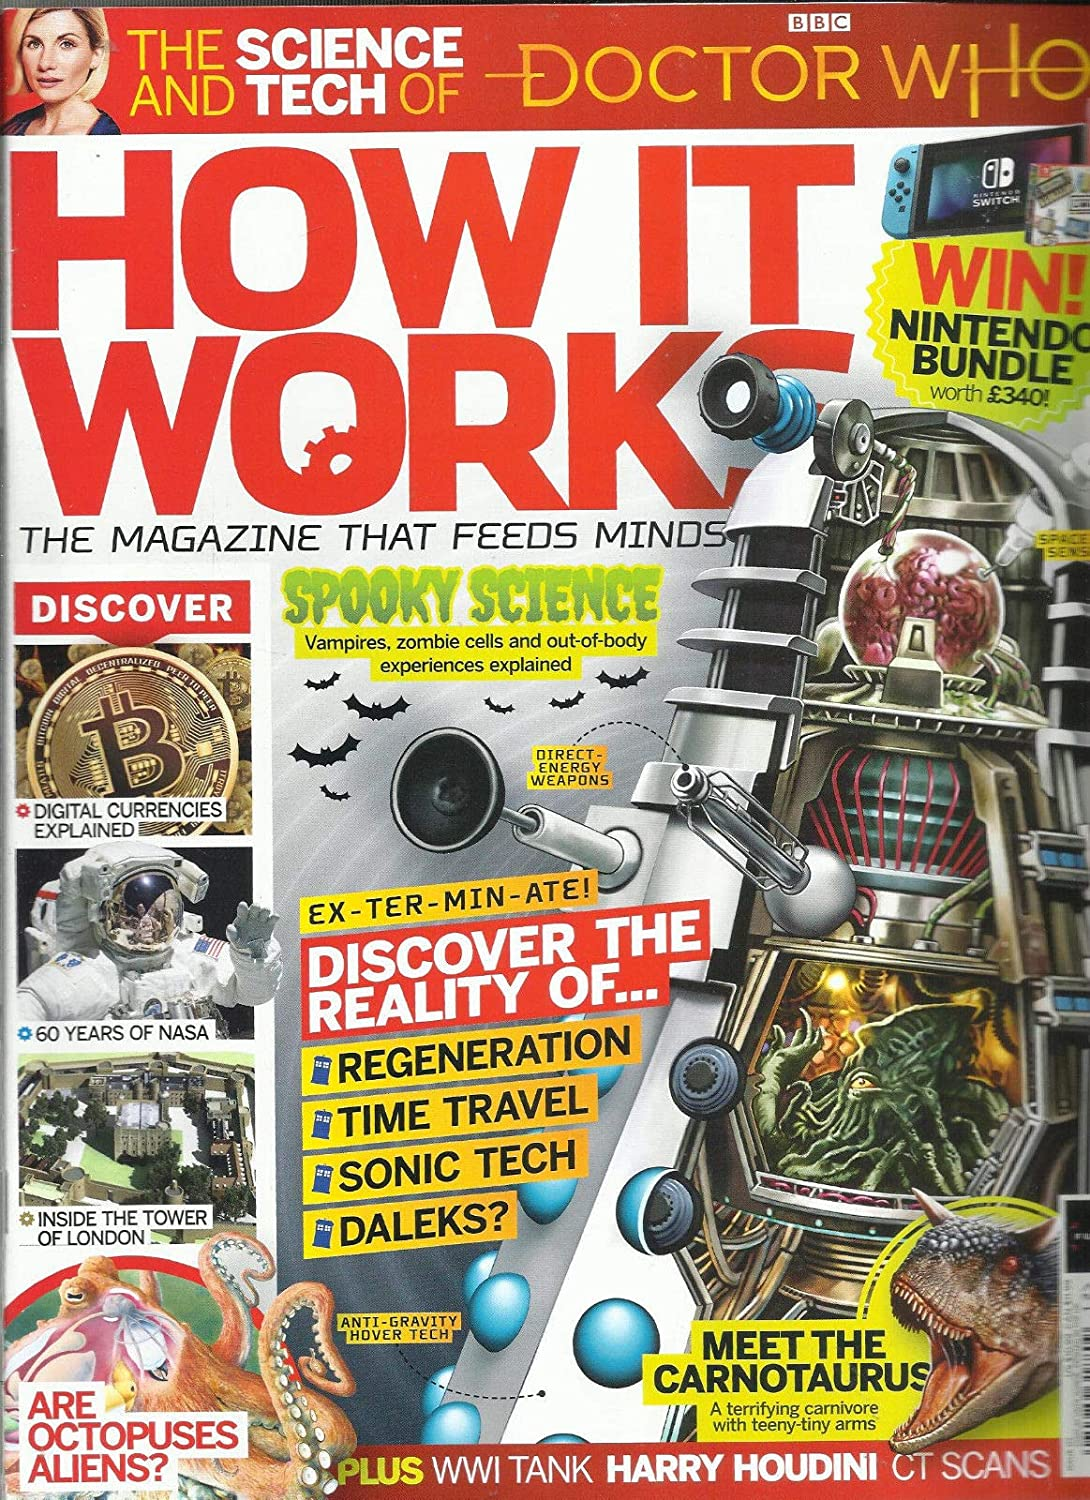 HOW IT WORKS MAGAZINE, THE SCIENCE AND TECH OF DOCTOR WHO ISSUE, 2018# 117